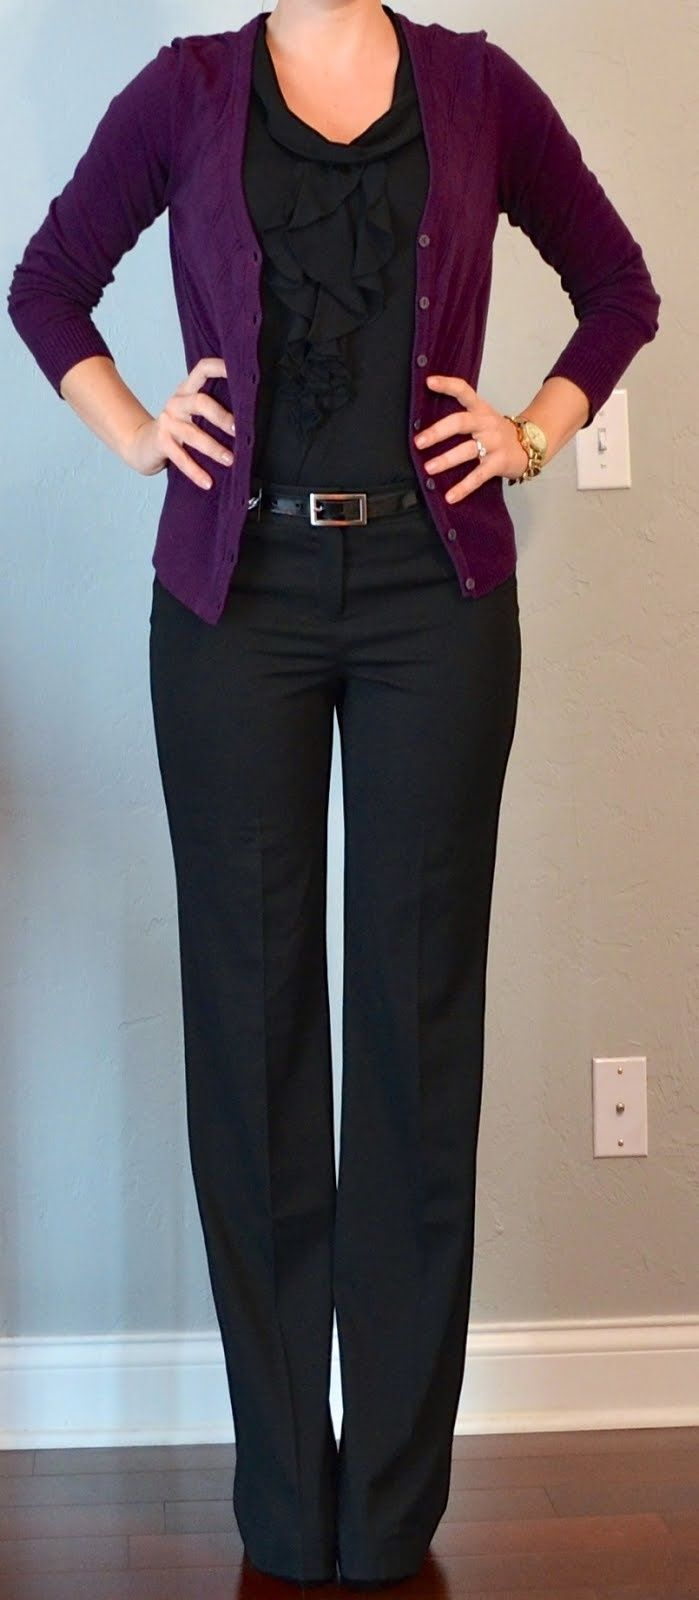 Plum sweater over classic charcoal business outfit